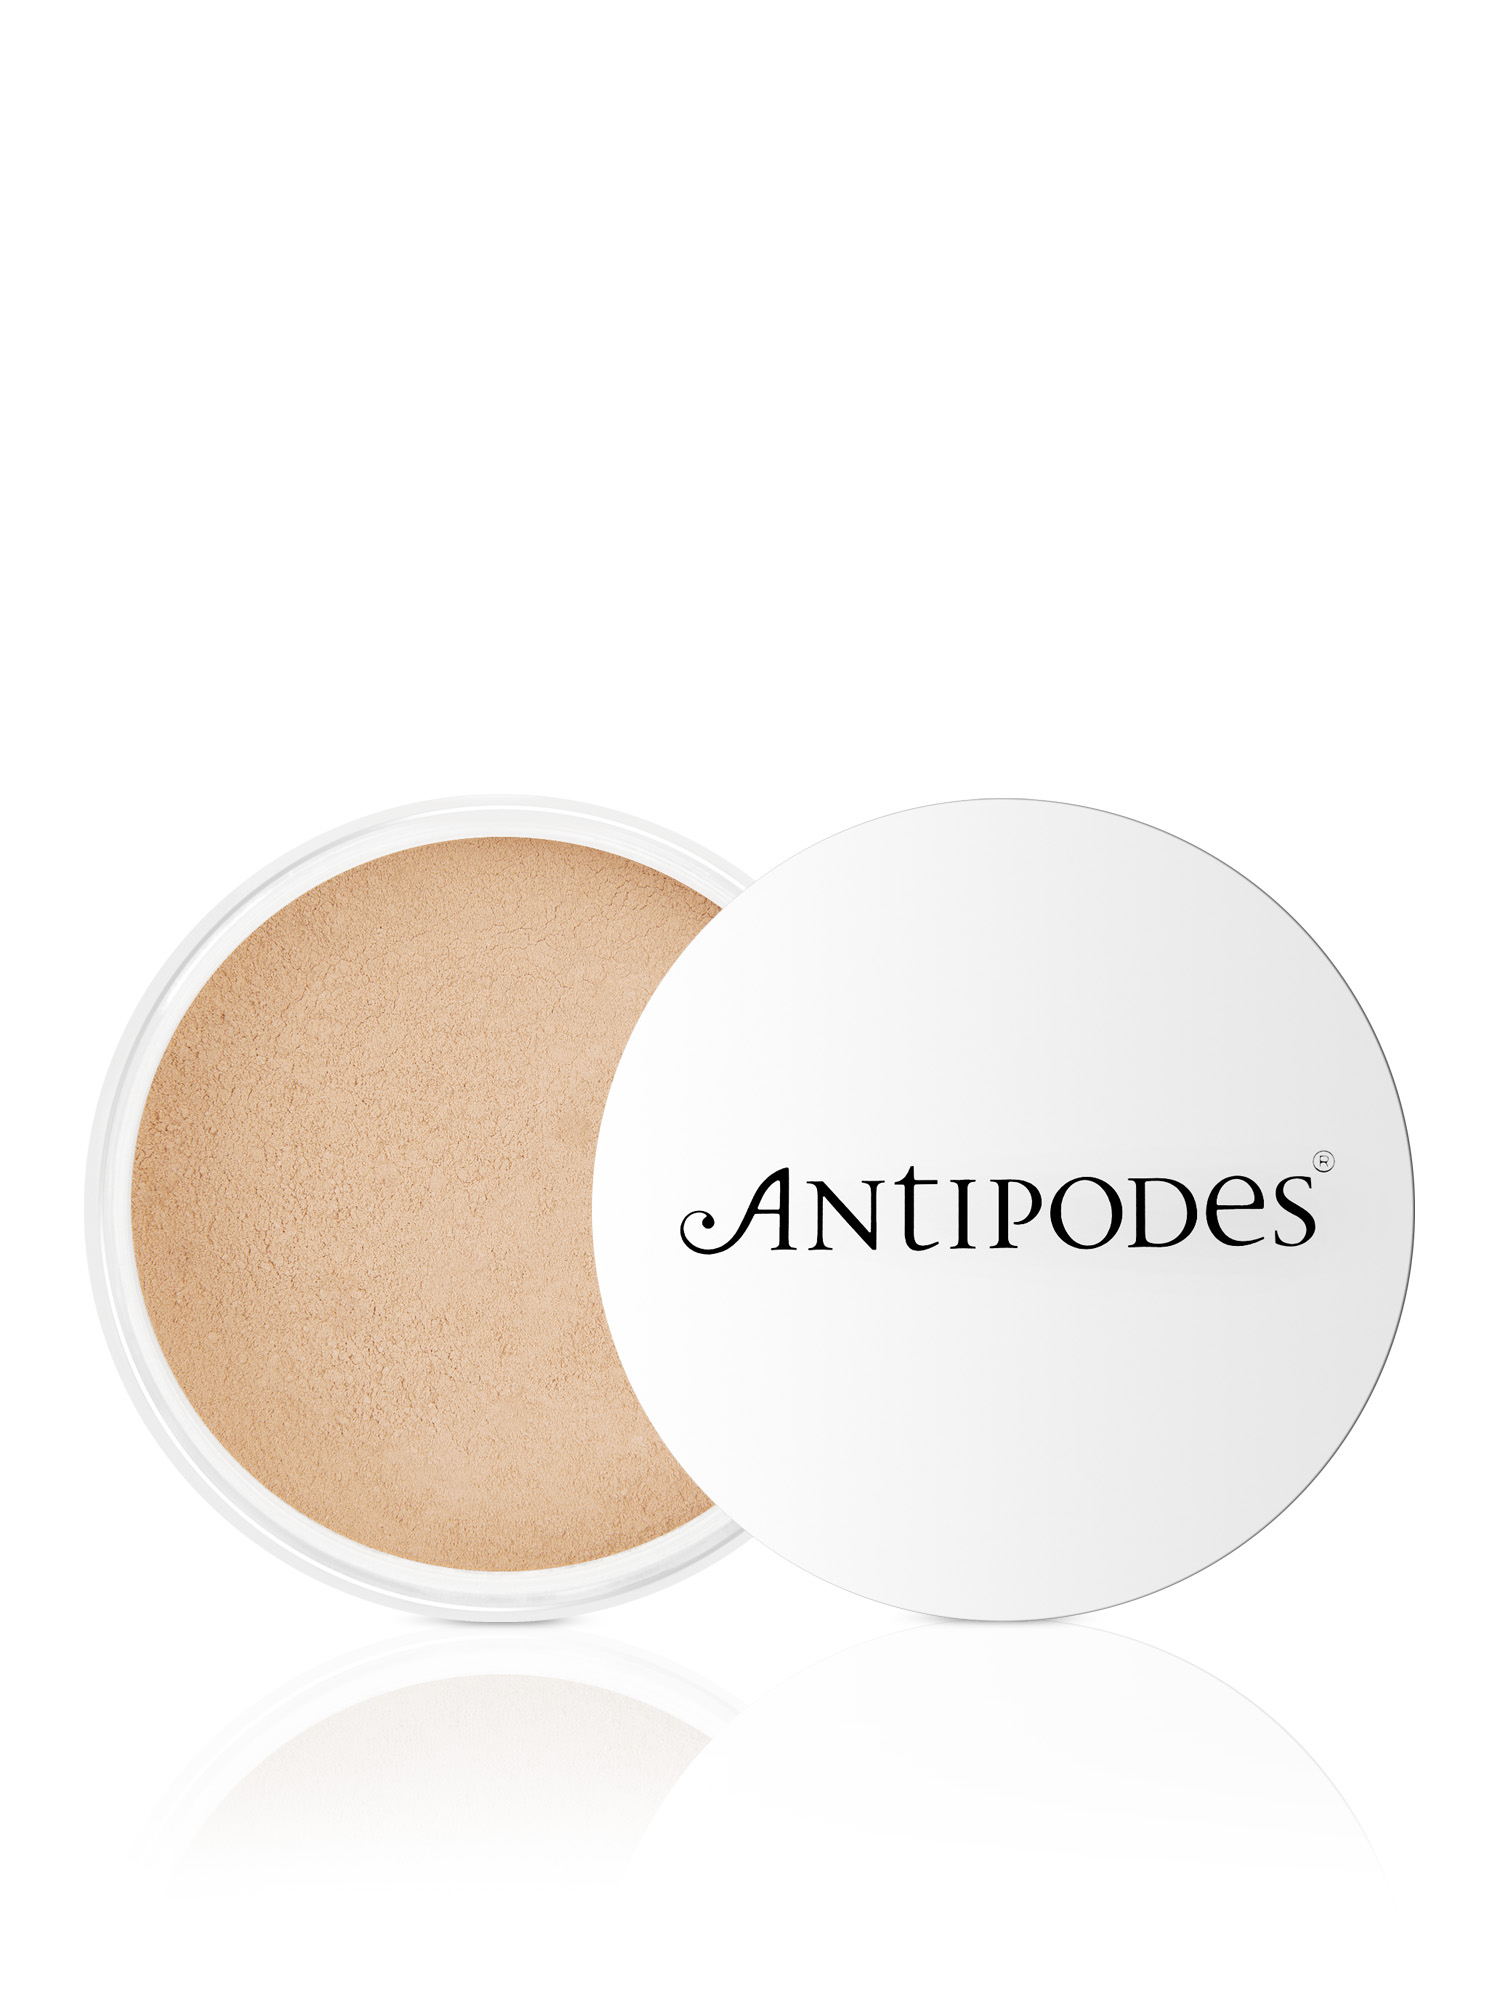 Antipodes Performance Plus Mineral Foundation with SPF 15 - Medium Beige (03)